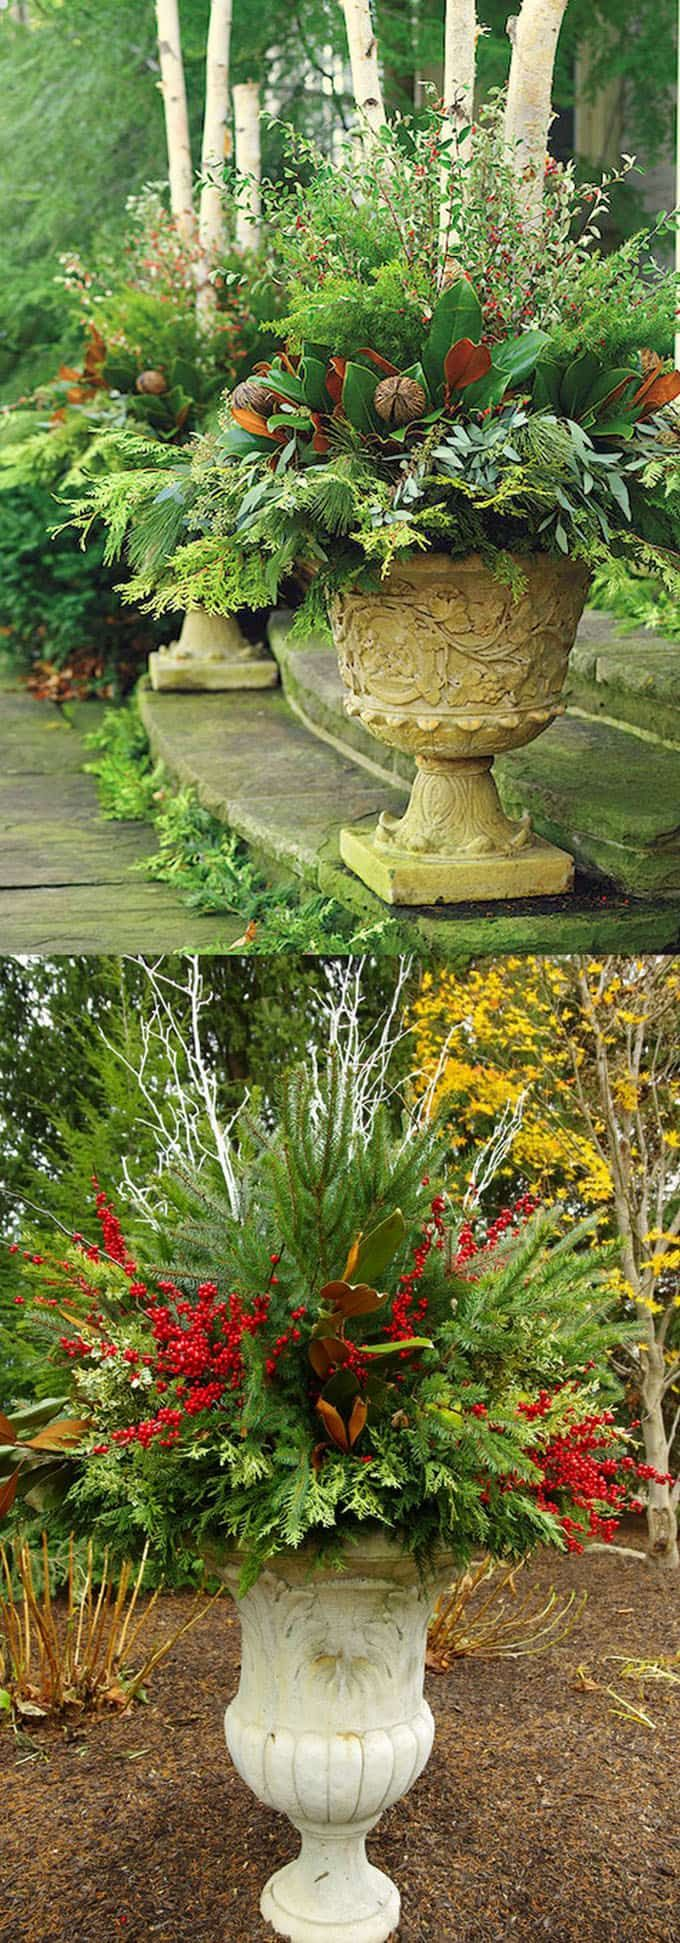 Best 25+ Christmas urns ideas only on Pinterest | Outdoor ...